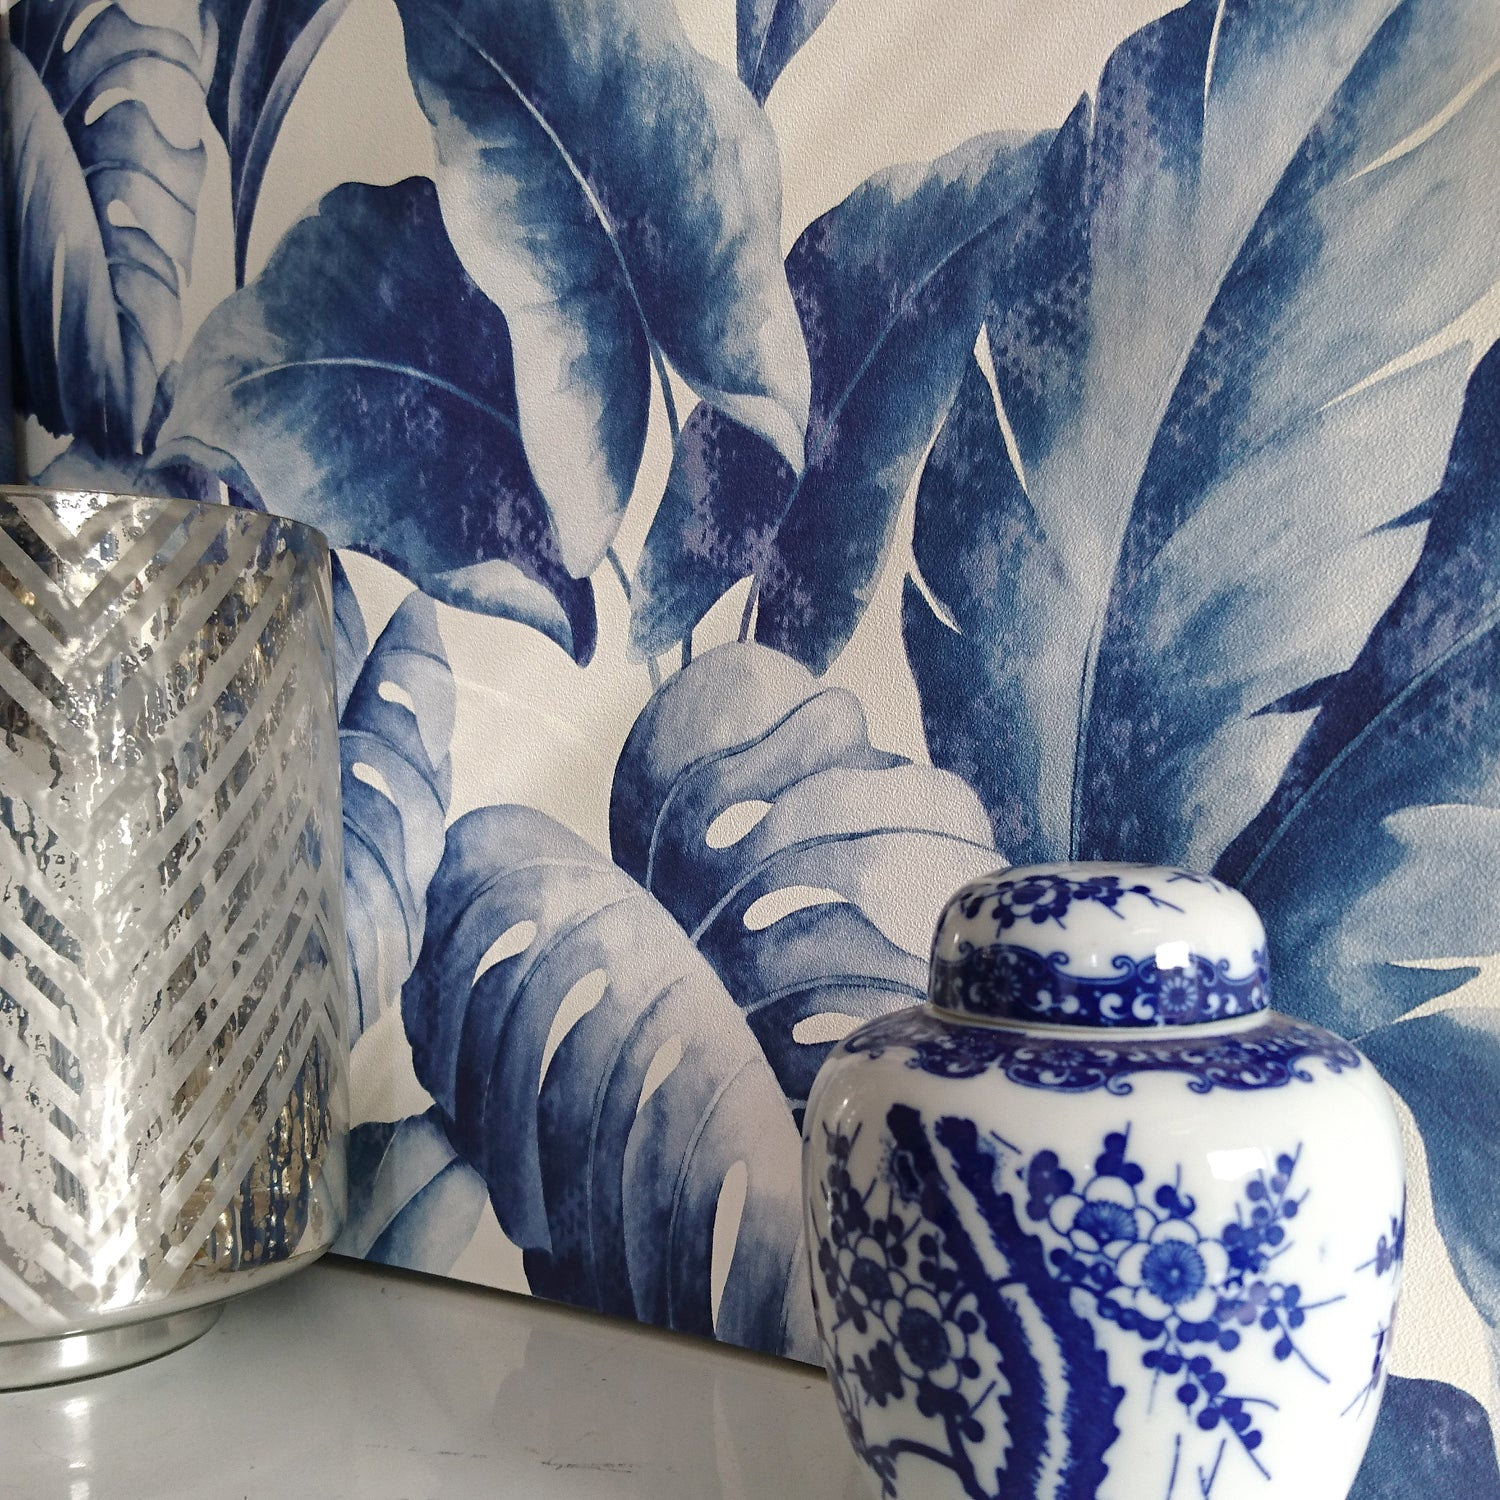 'Banana Leaf' Tree Design Wallpaper | Blue & Navy Tones - Your 4 Walls